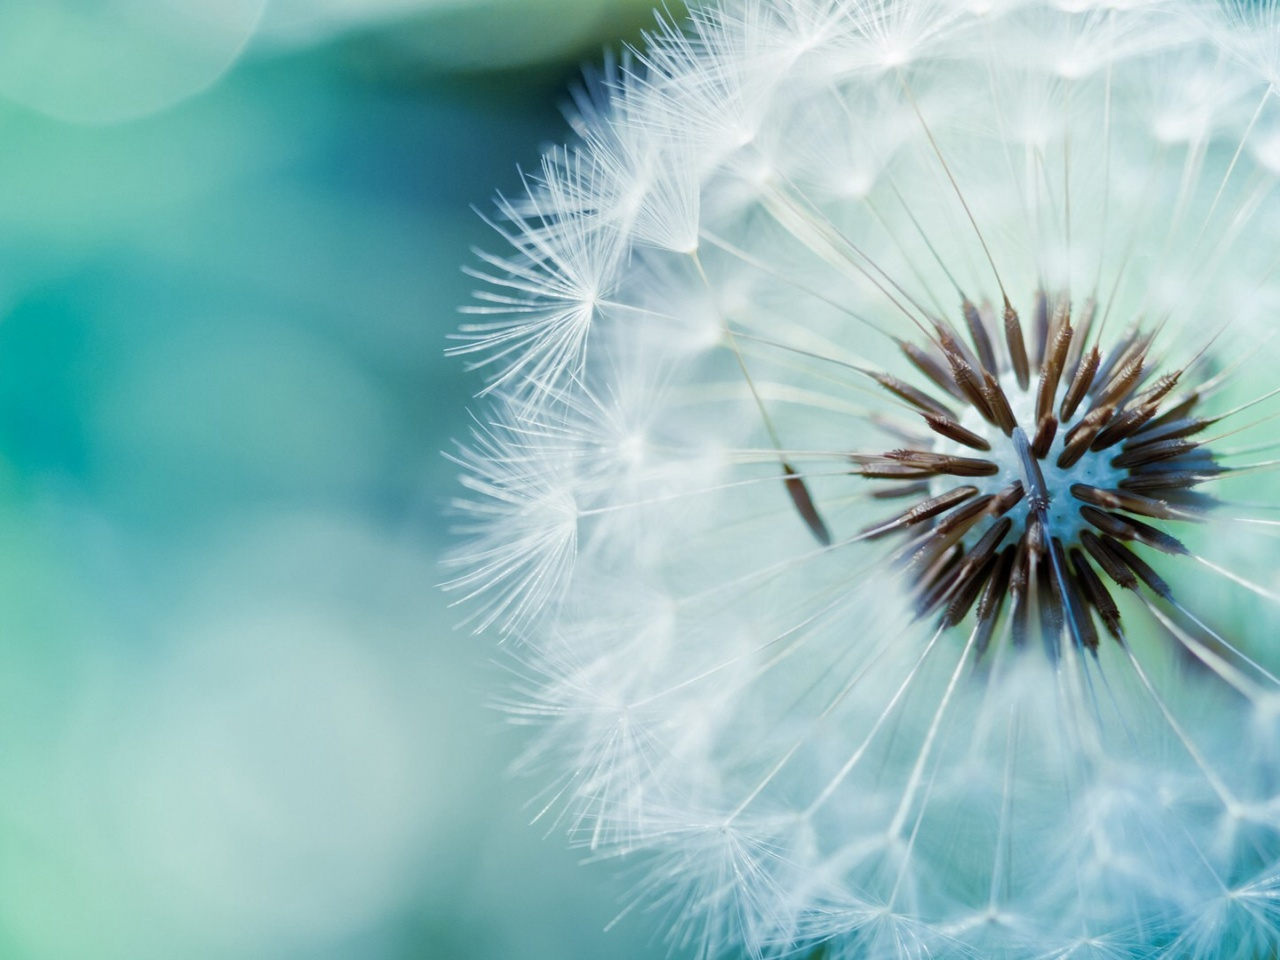 1280x960 Fluffy Dandelion desktop PC and Mac wallpaper 1280x960